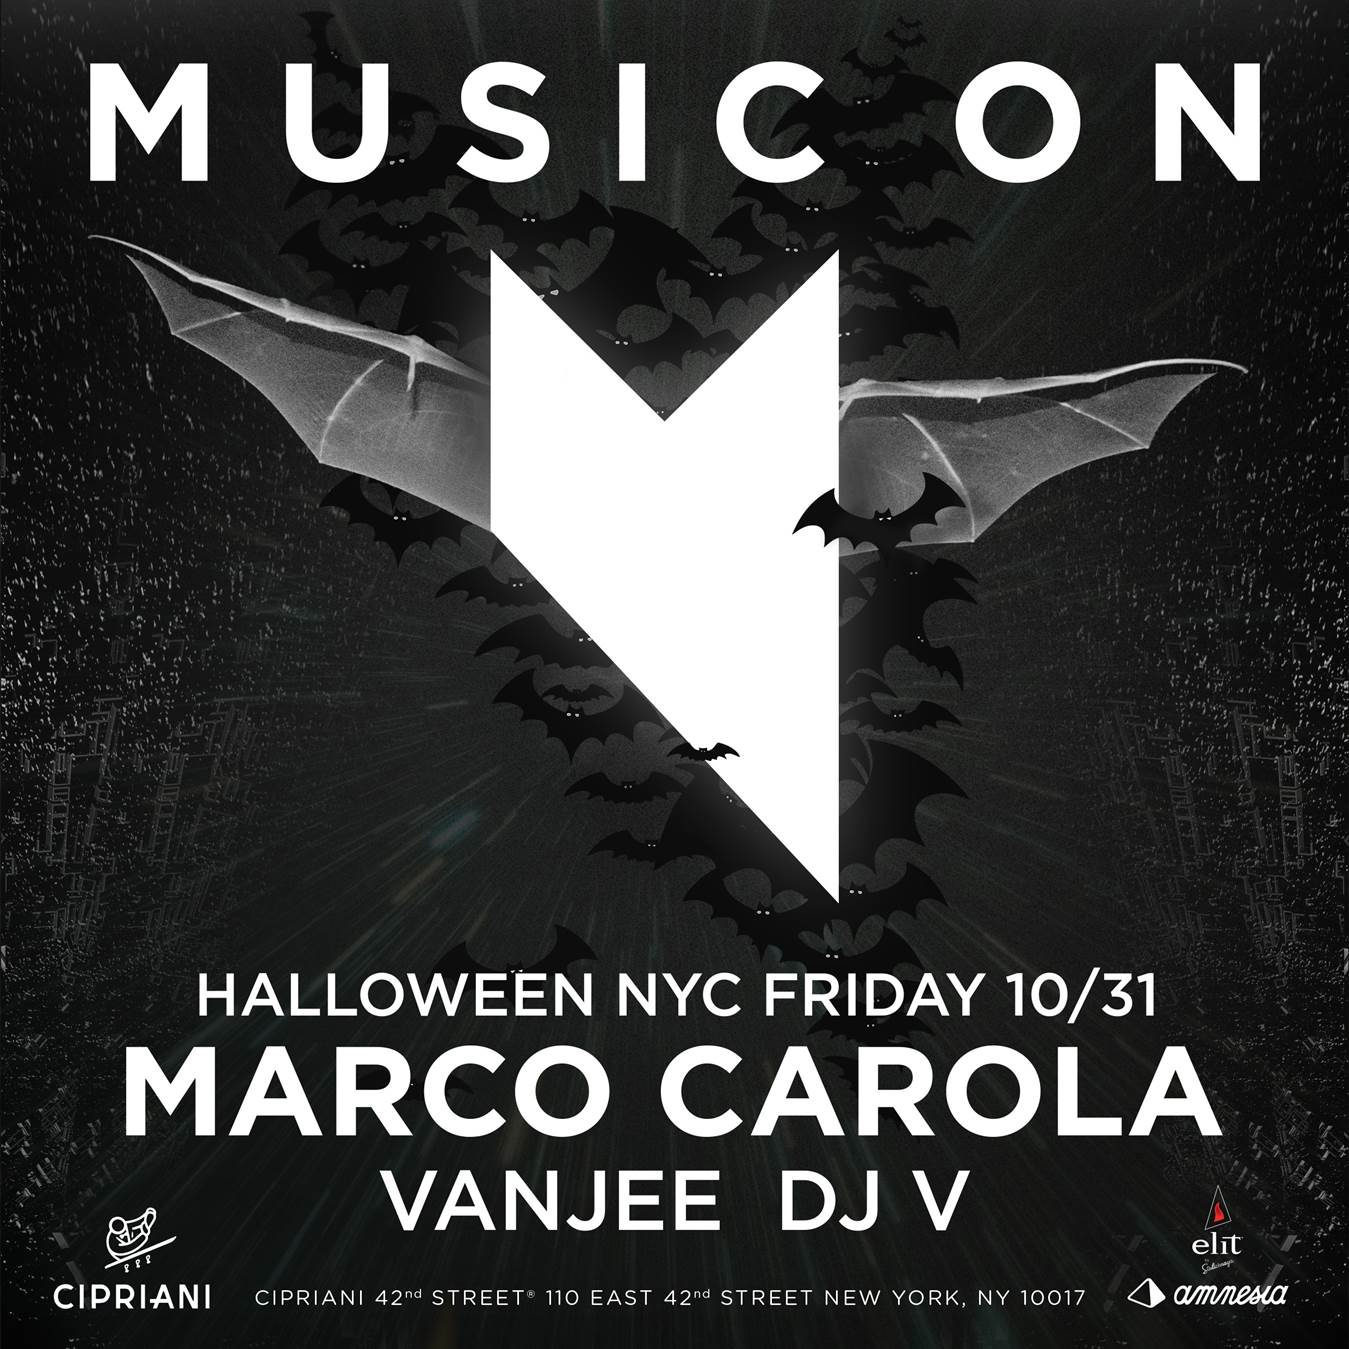 nyc giveaway marco carolas music on cipriani on october 31 2014